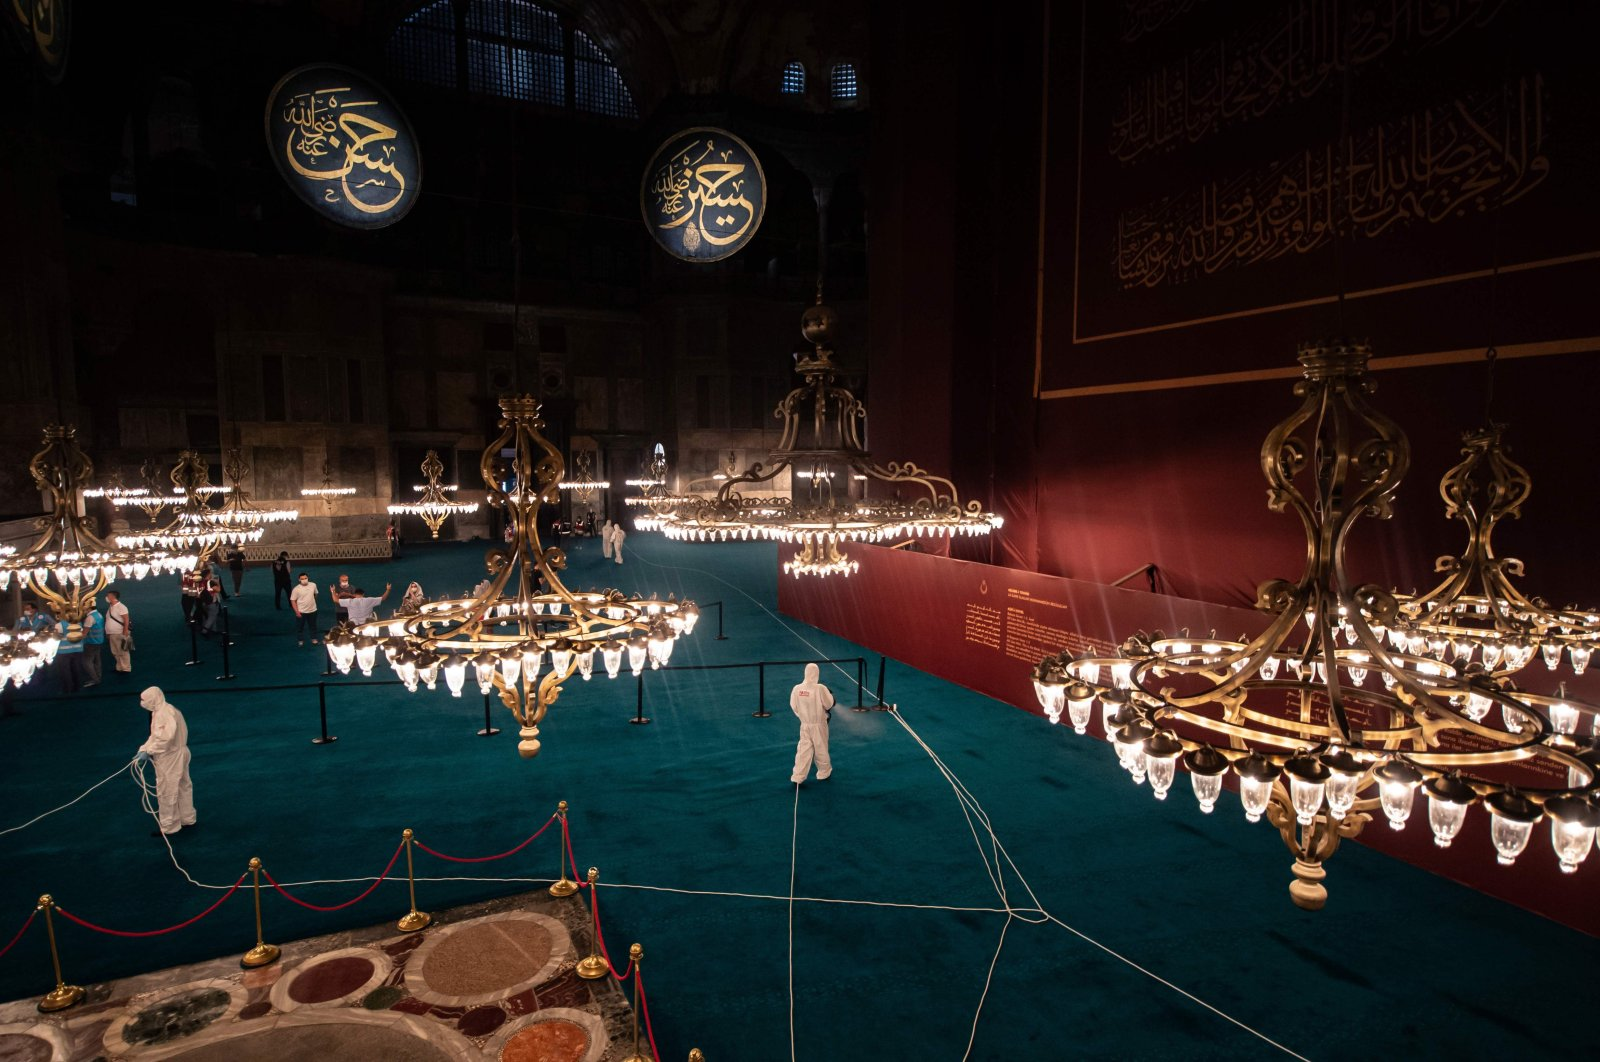 Municipality workers disinfect the interior of Hagia Sophia Grand Mosque after the night prayer in Istanbul, Turkey, July 26, 2020. (AFP Photo)